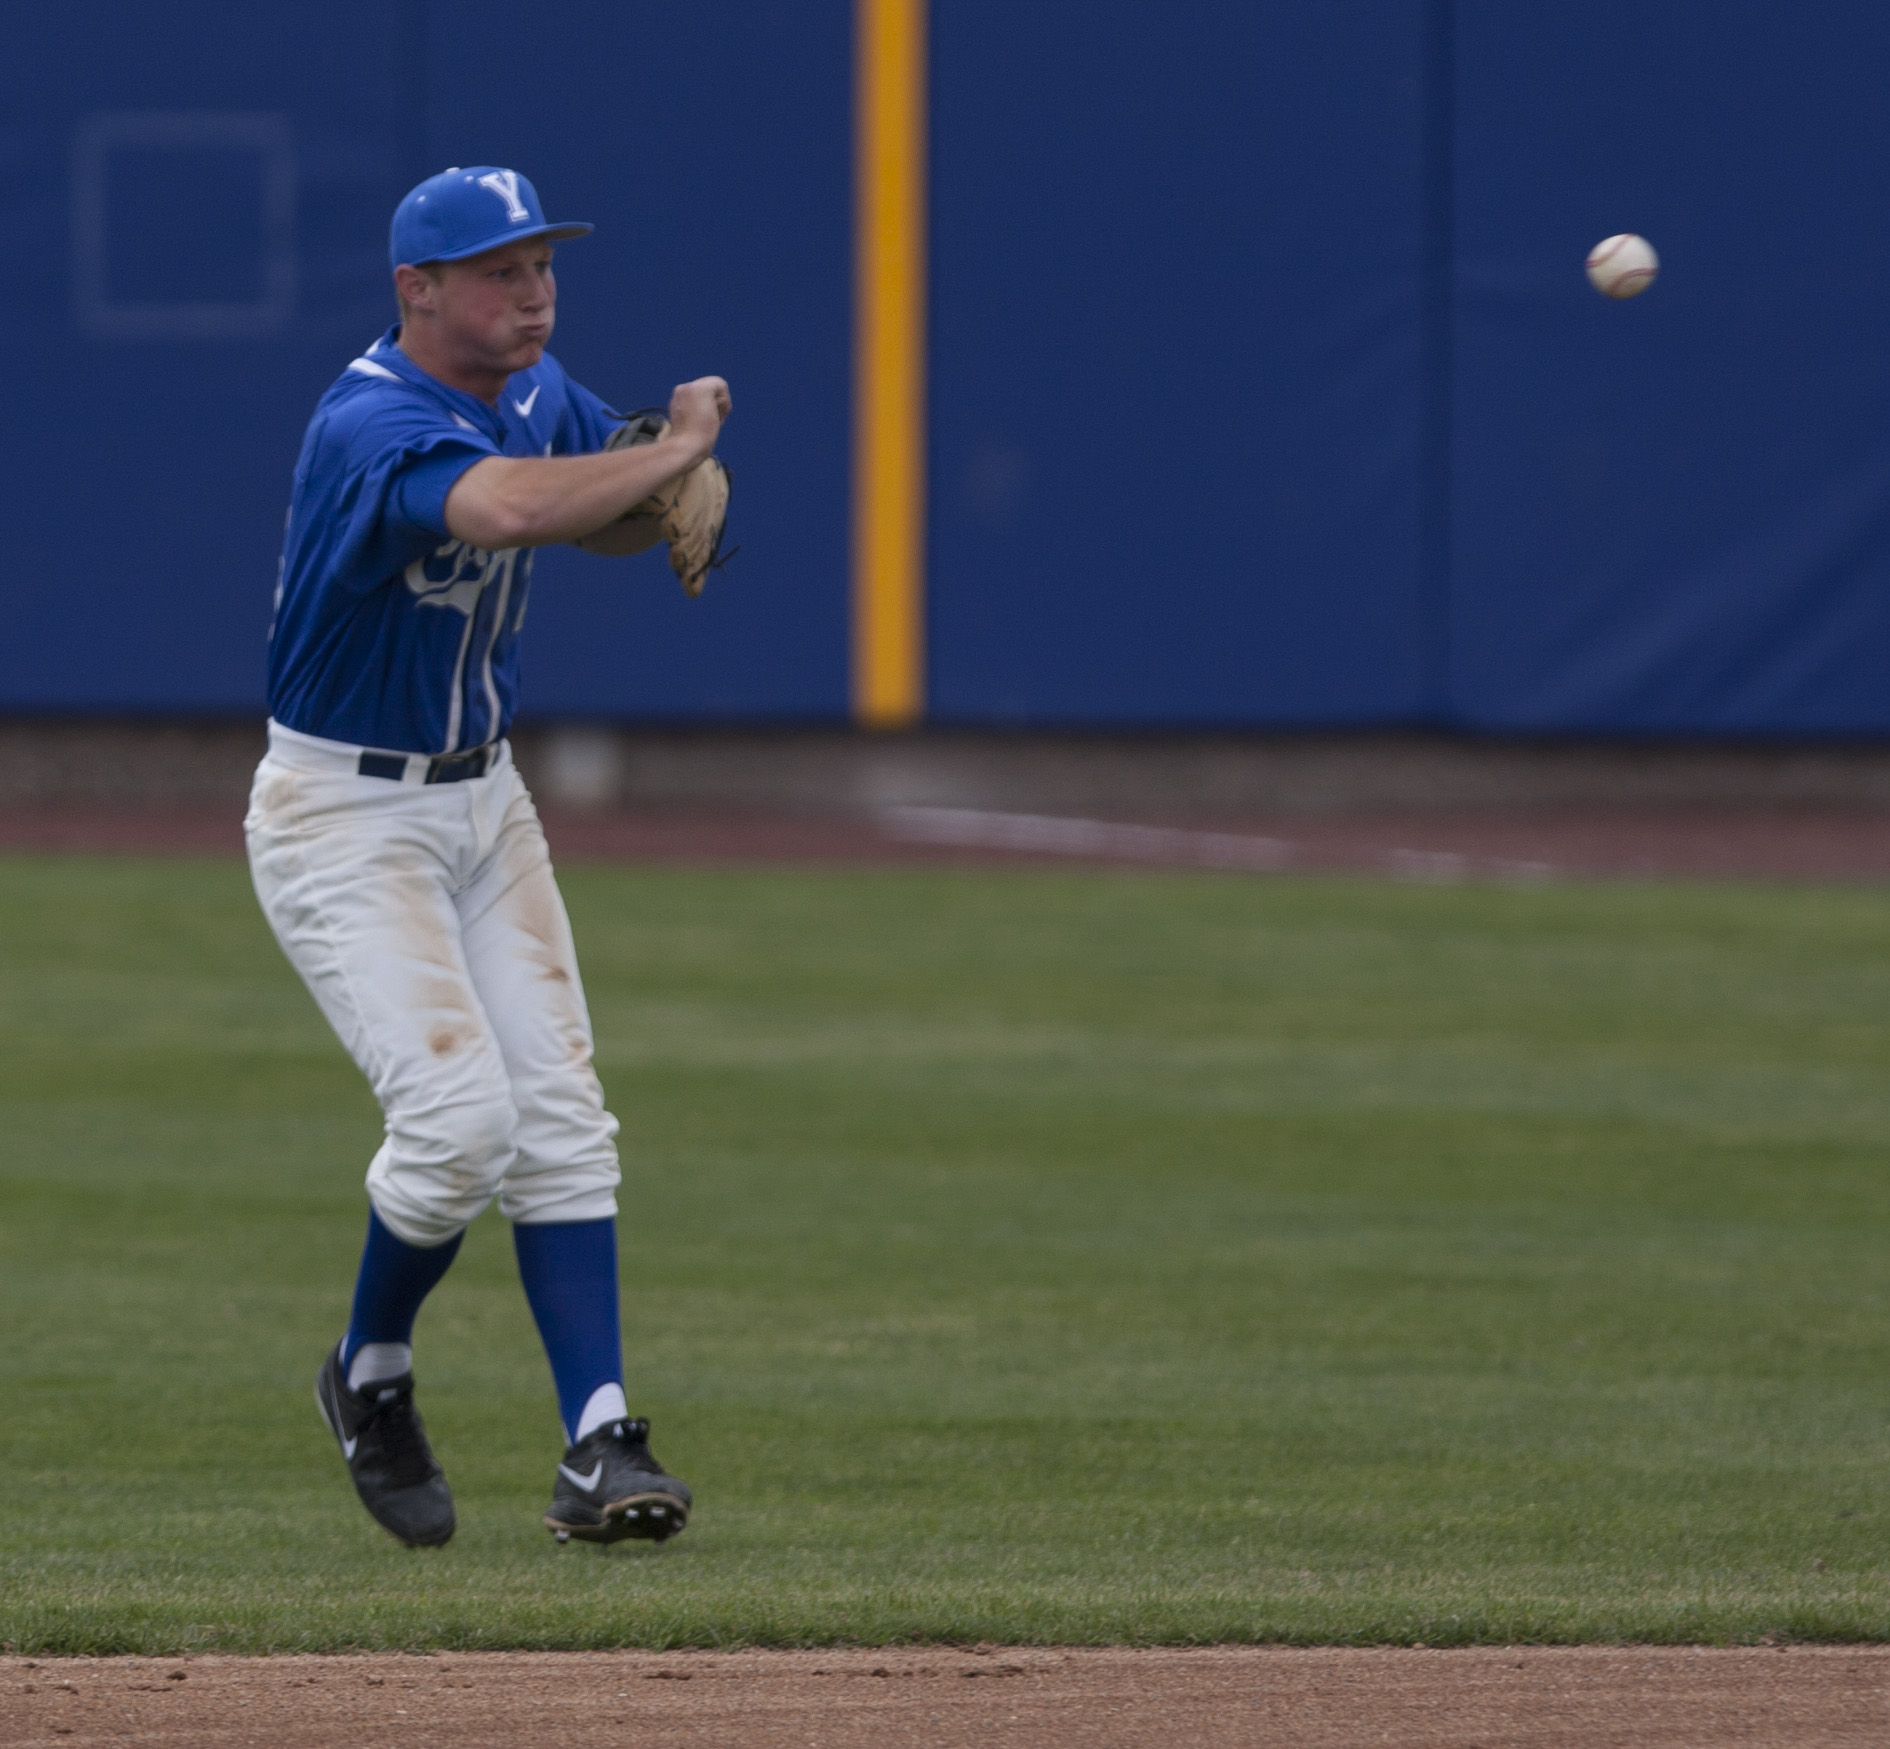 BYU shortstop Hayden Nielsen jumps and throws to first base for an out. Photo by Natalie Stoker